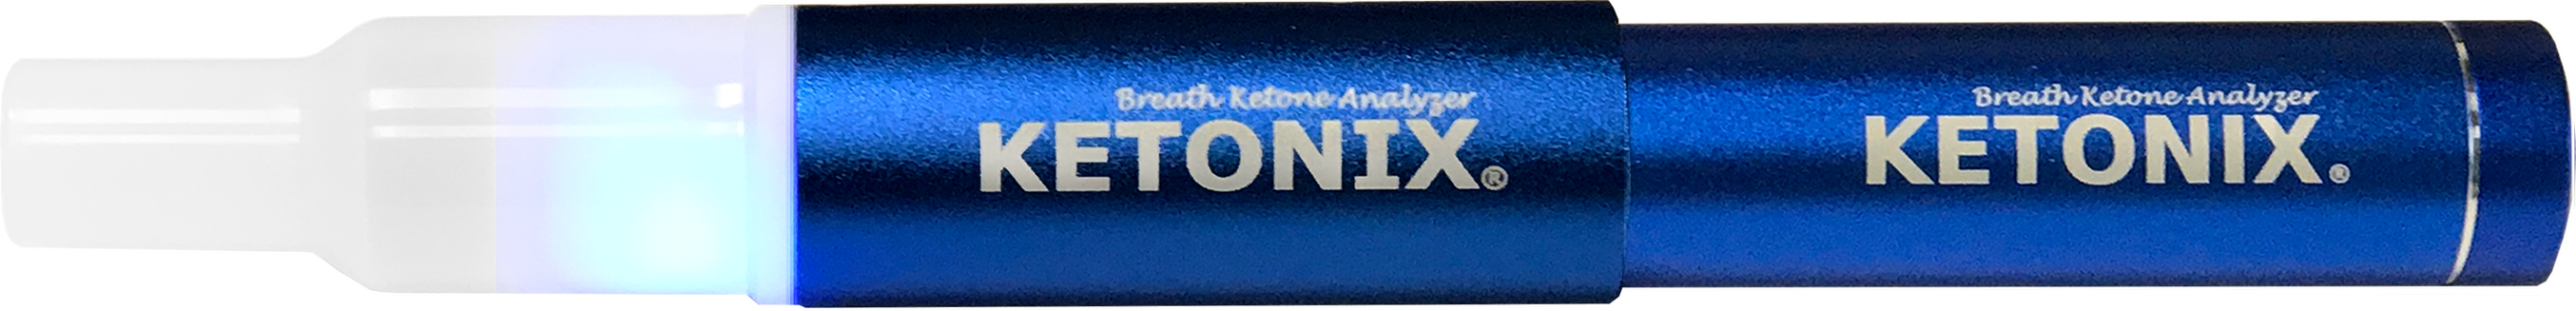 2019 KETONIX® Bluetooth® with Battery